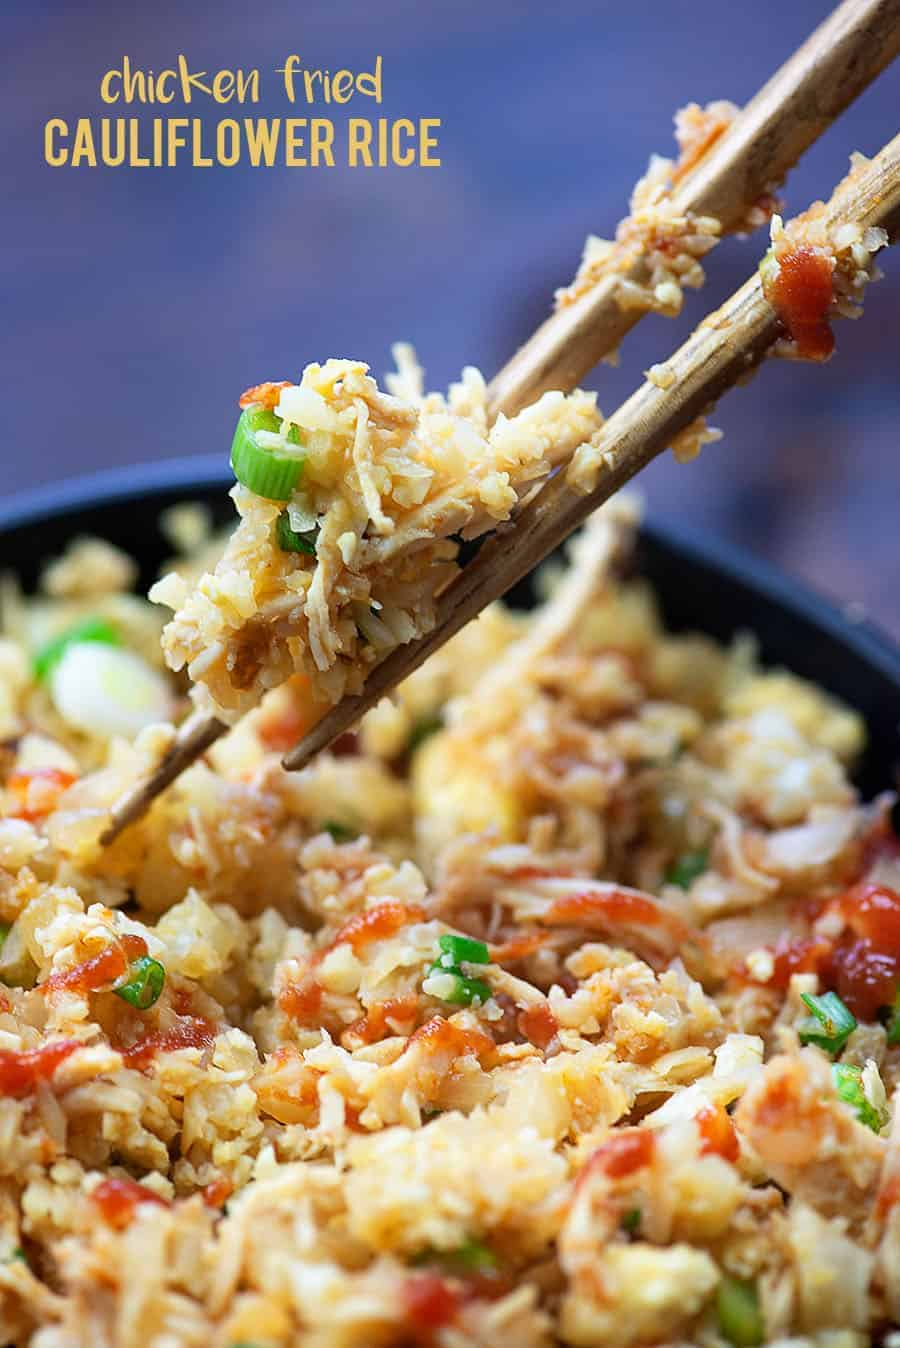 Low carb chicken fried cauliflower rice! Skip the takeout! #recipe #lowcarb #keto #lchf